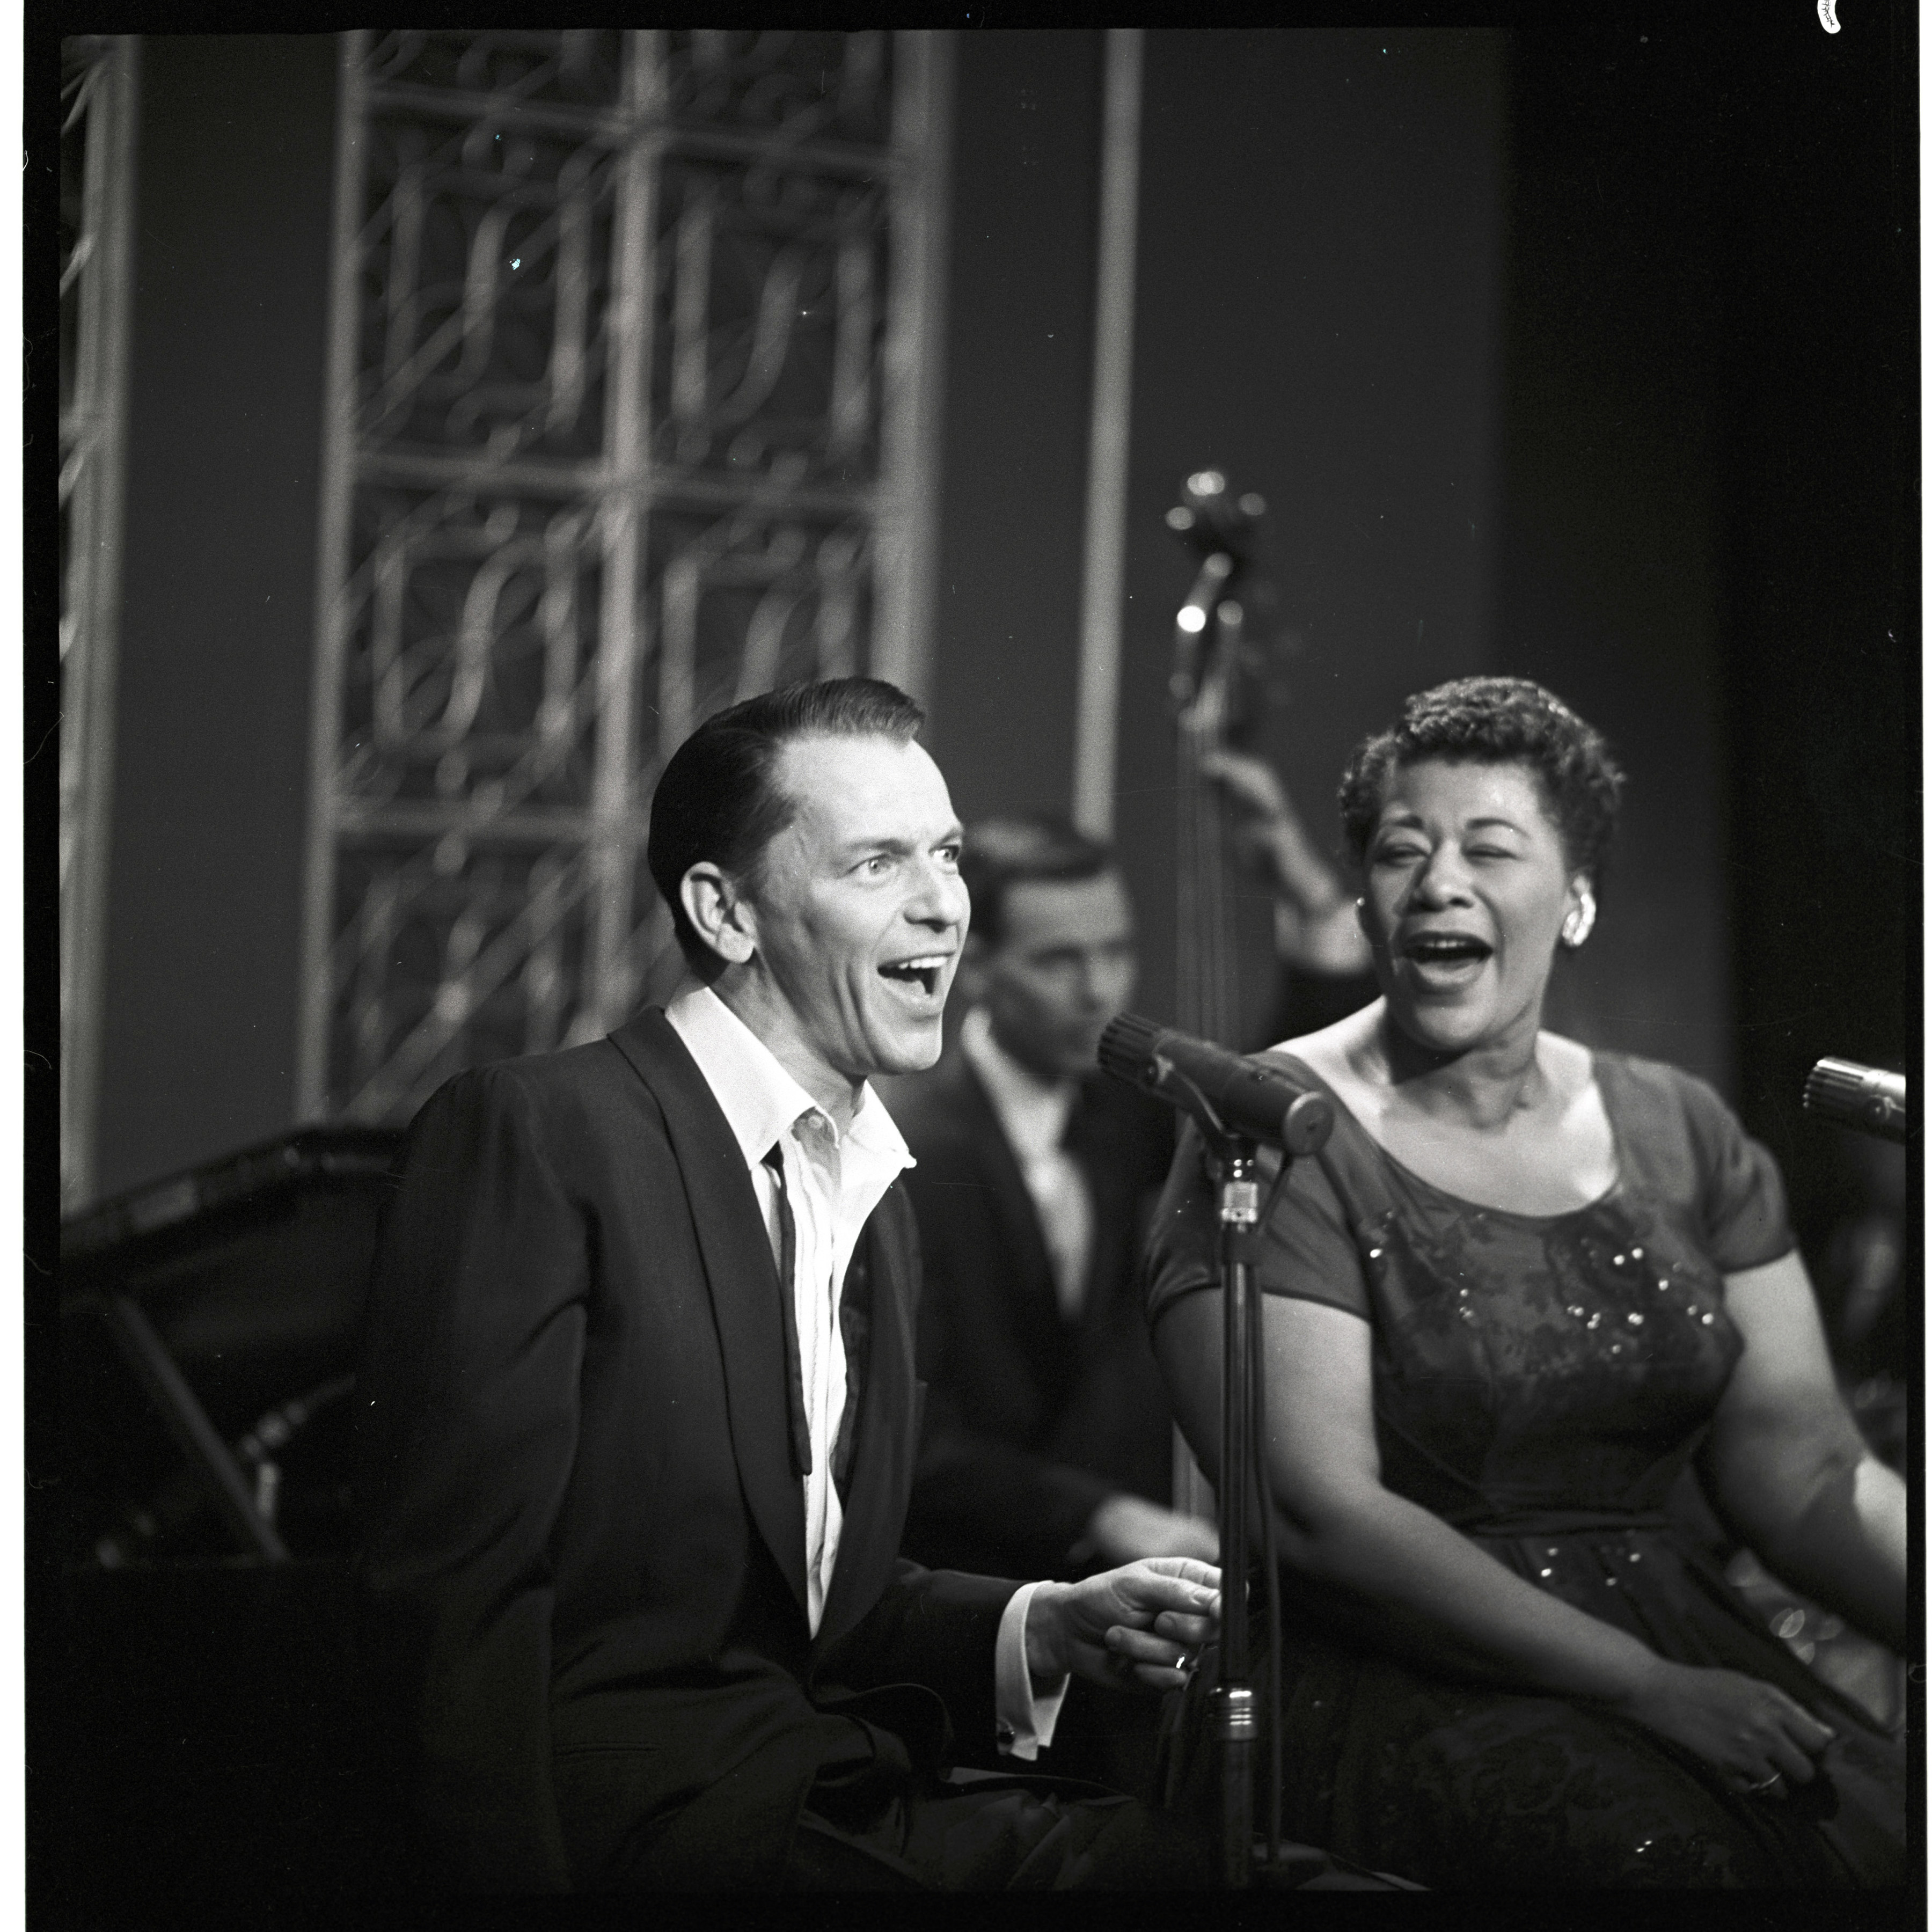 Caption: Frank Sinatra and Ella Fitzgerald on The Frank Sinatra Show - Airdate: May 9, 1958, Credit: ABC Photo Archives/Getty